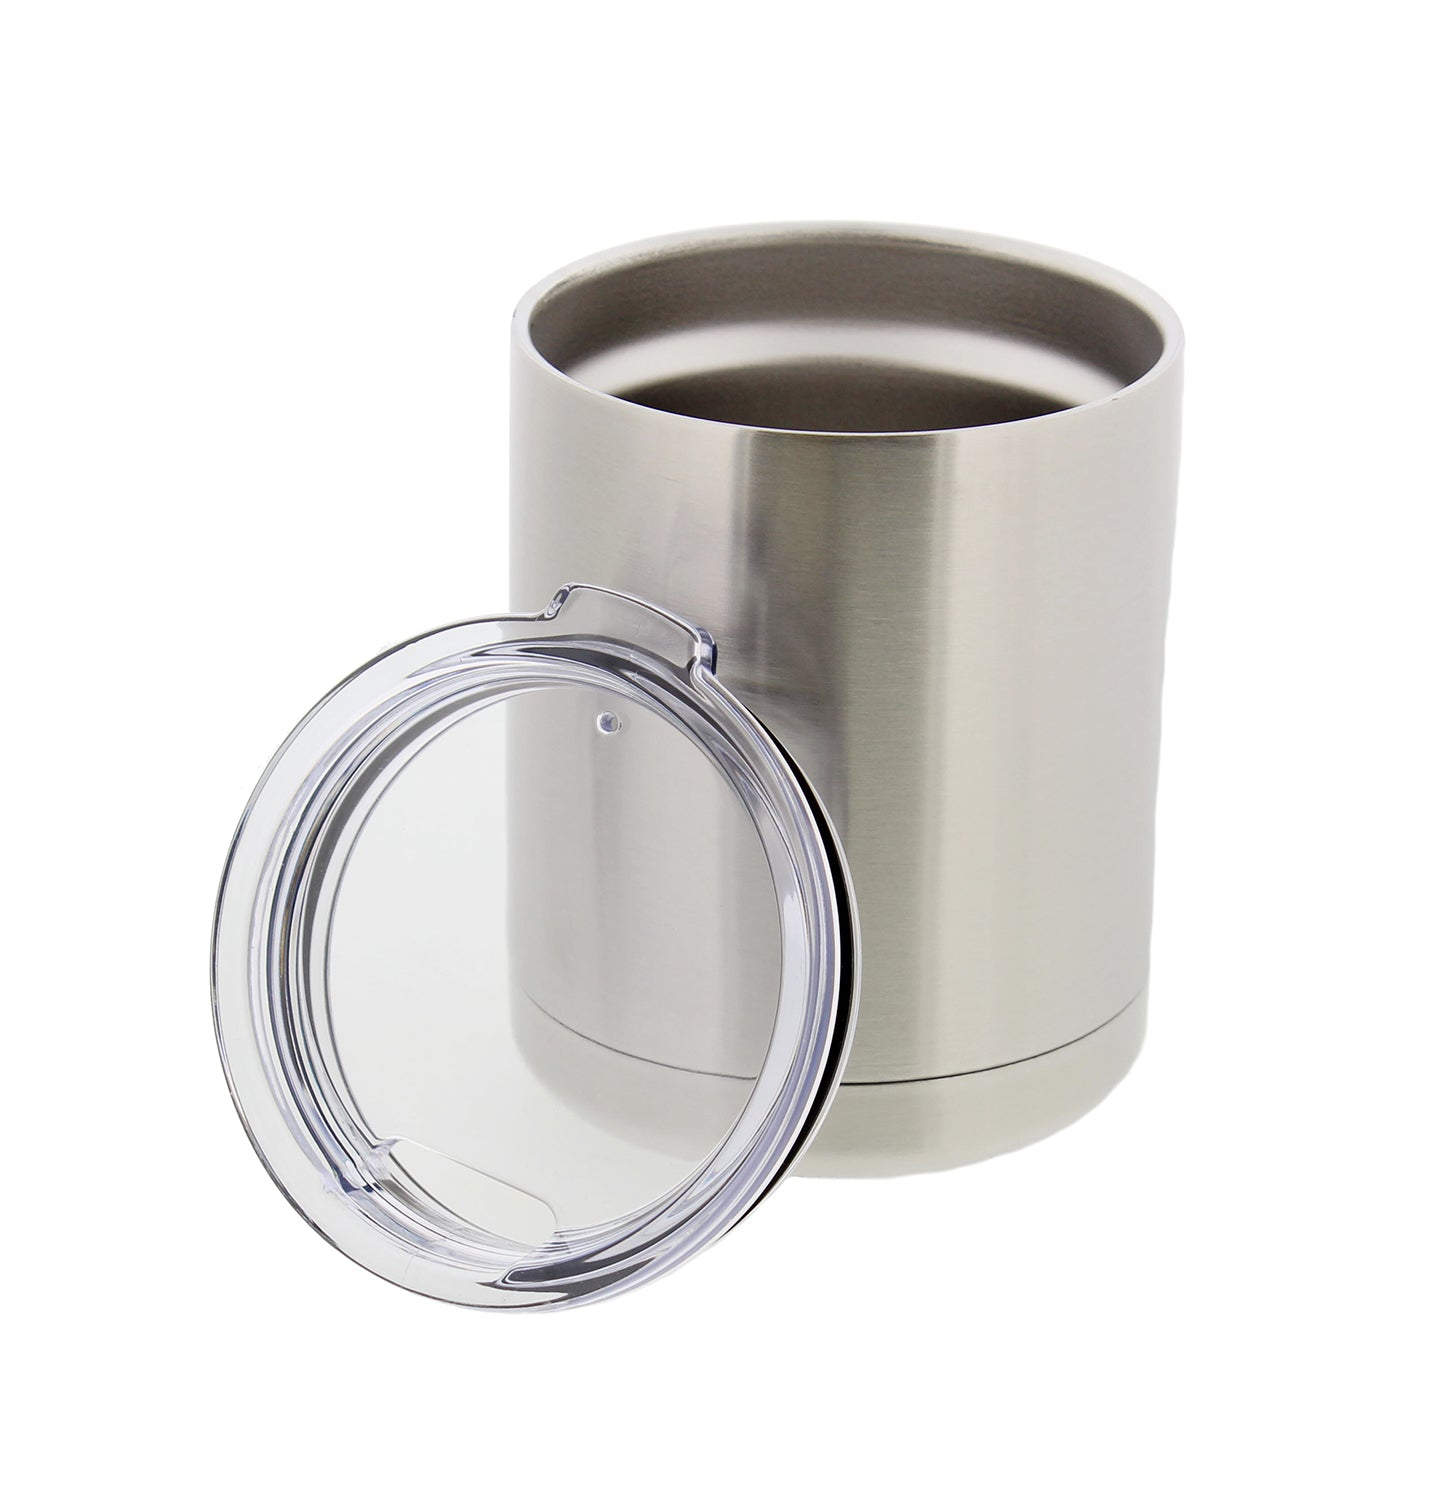 Insulated Stainless Steel 10oz Travel Mug Tumbler with Lid